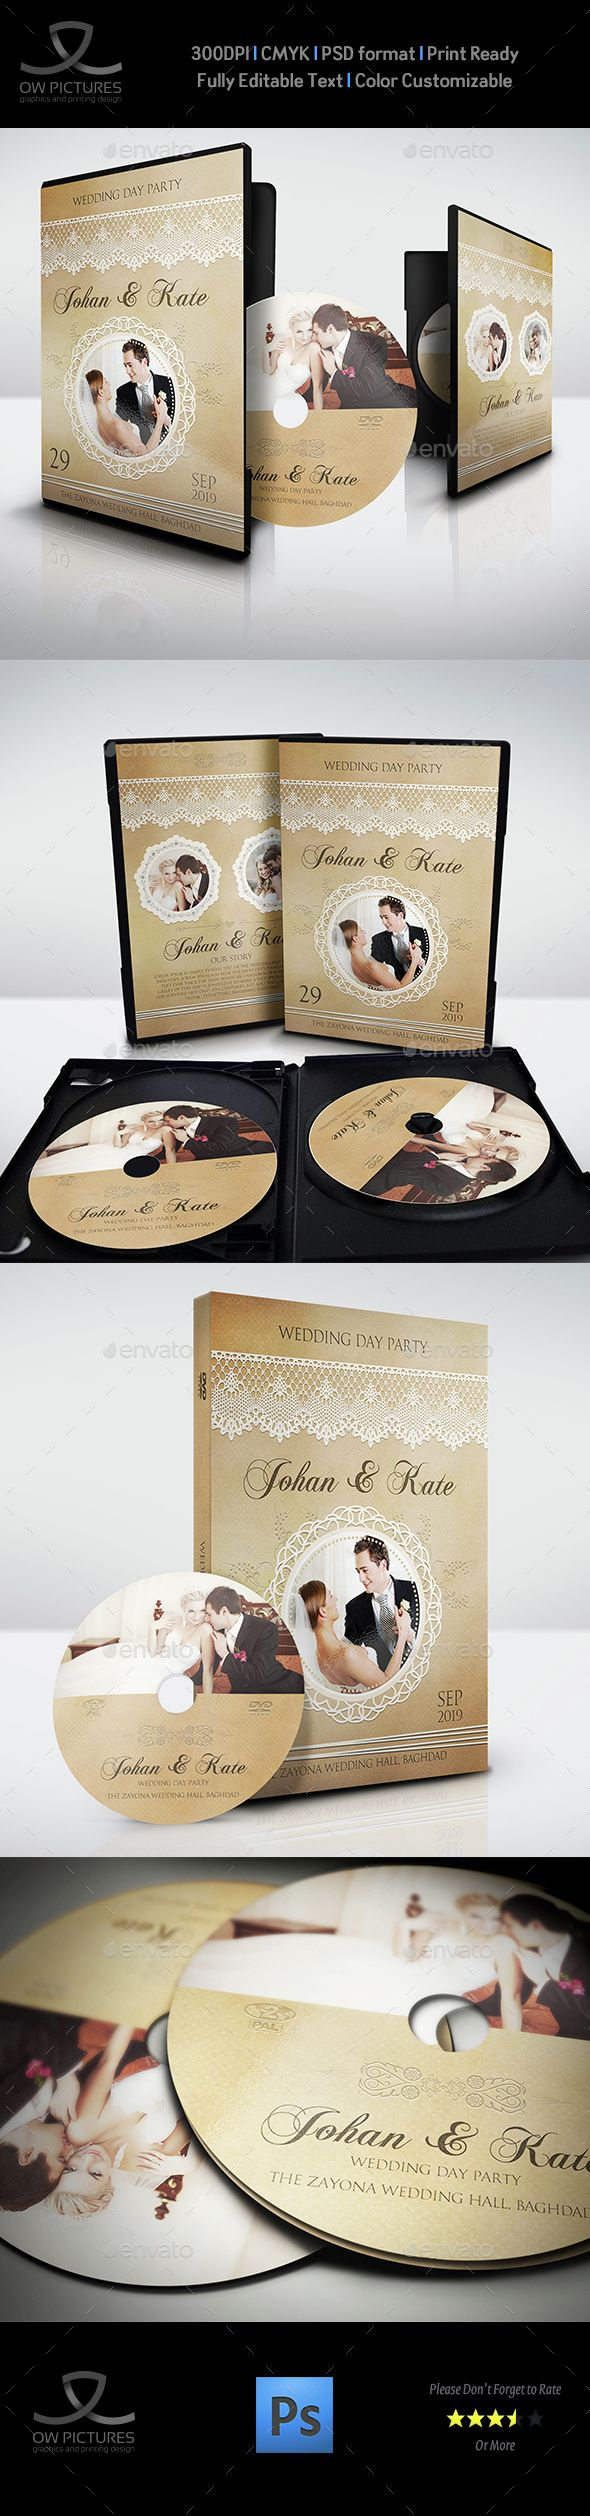 Wedding DVD Cover and DVD Label Template Vol.6 — Photoshop PSD #bride #disc covers • Available here → https://graphicriver.net/item/wedding-dvd-cover-and-dvd-label-template-vol6/14871431?ref=pxcr